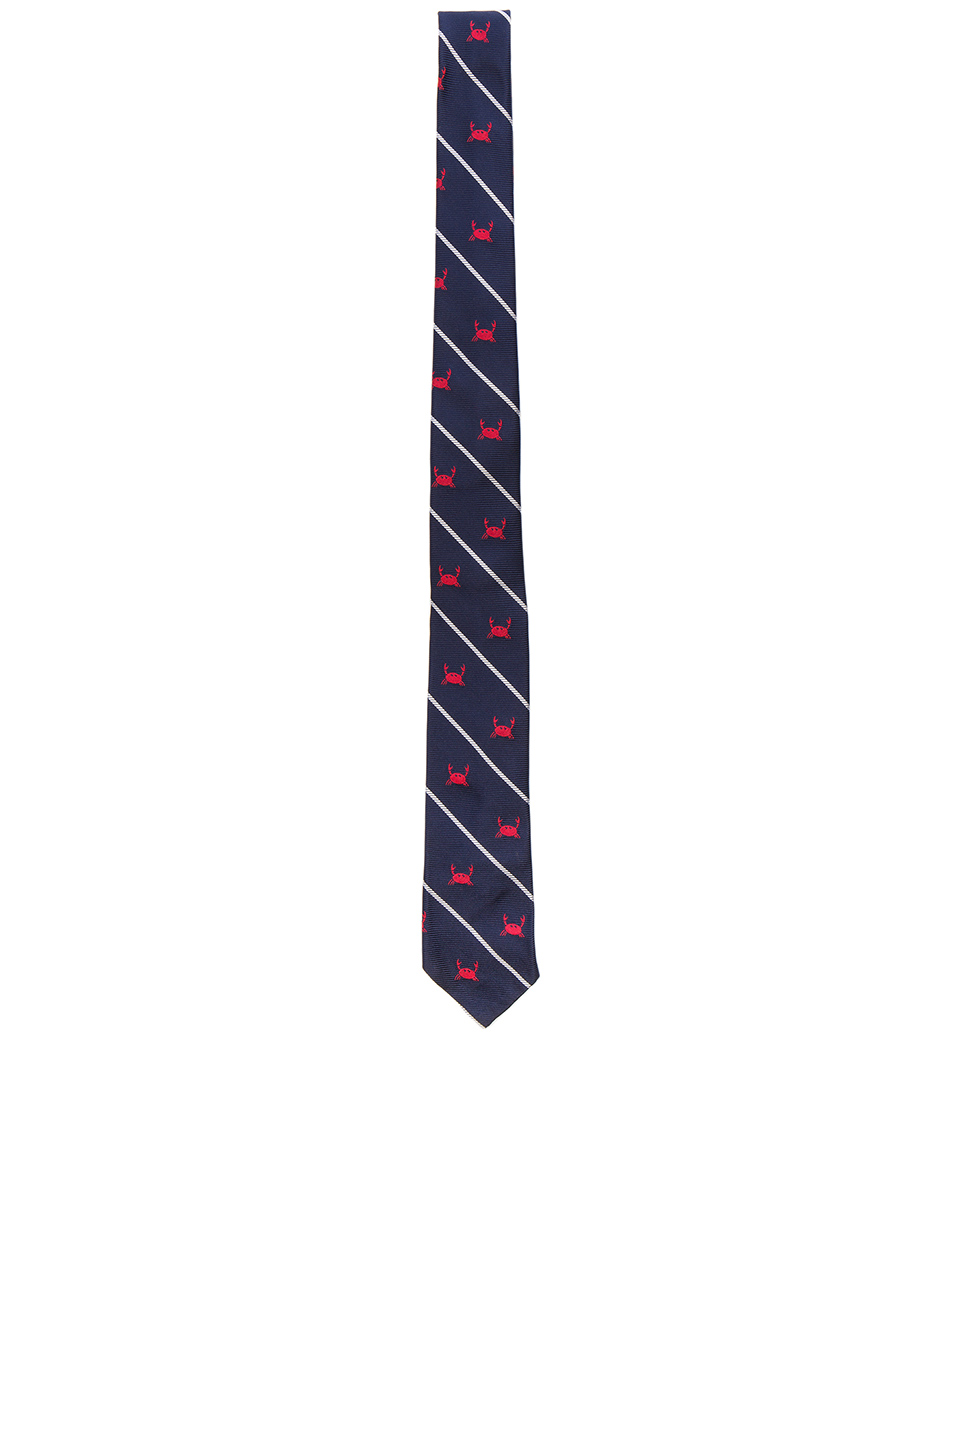 Thom Browne Classic Crab Tie in Blue,Stripes,Animal Print